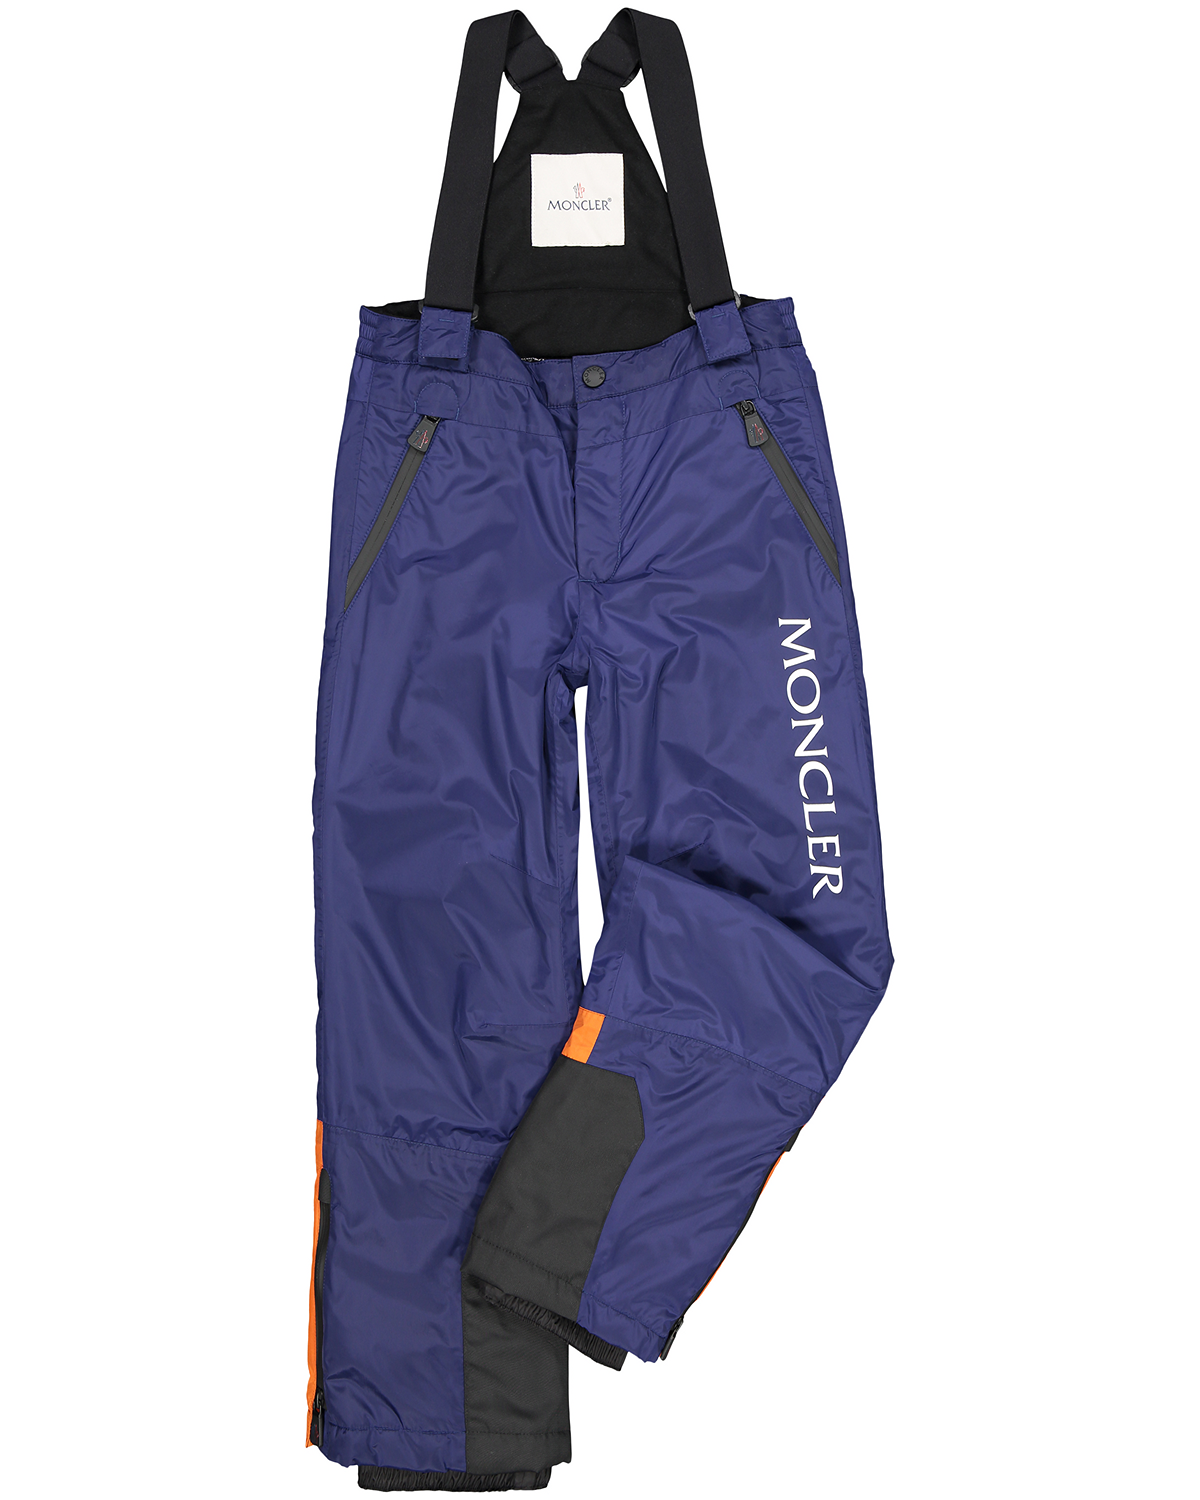 timeless design 190b3 74edc Kinder-Skihose